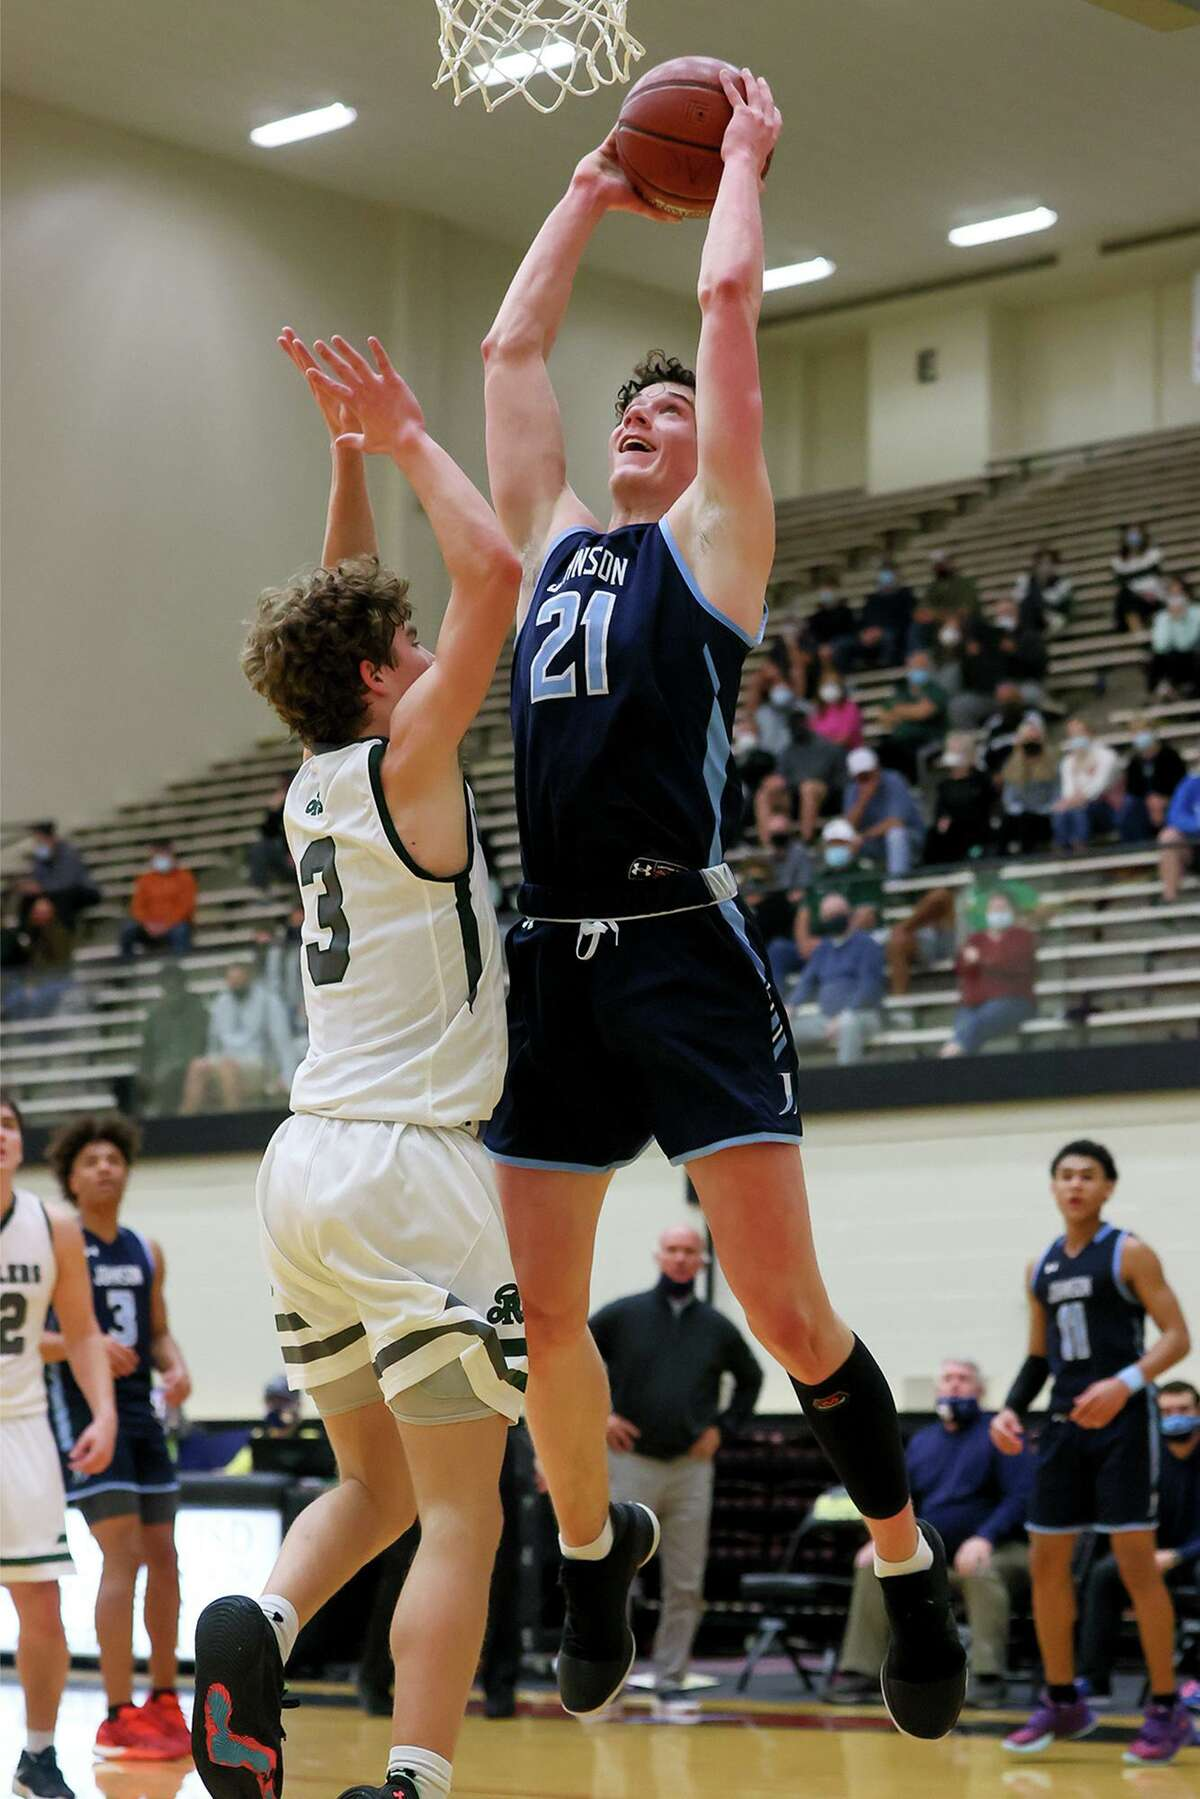 Johnson's Mitch Iden goes up for a basket over Reagan's Trey Thompson during their District 28-6A boys basketball game at Littleton Gym on Saturday, Jan. 23, 2021. Johnson beat Reagan 66-46.